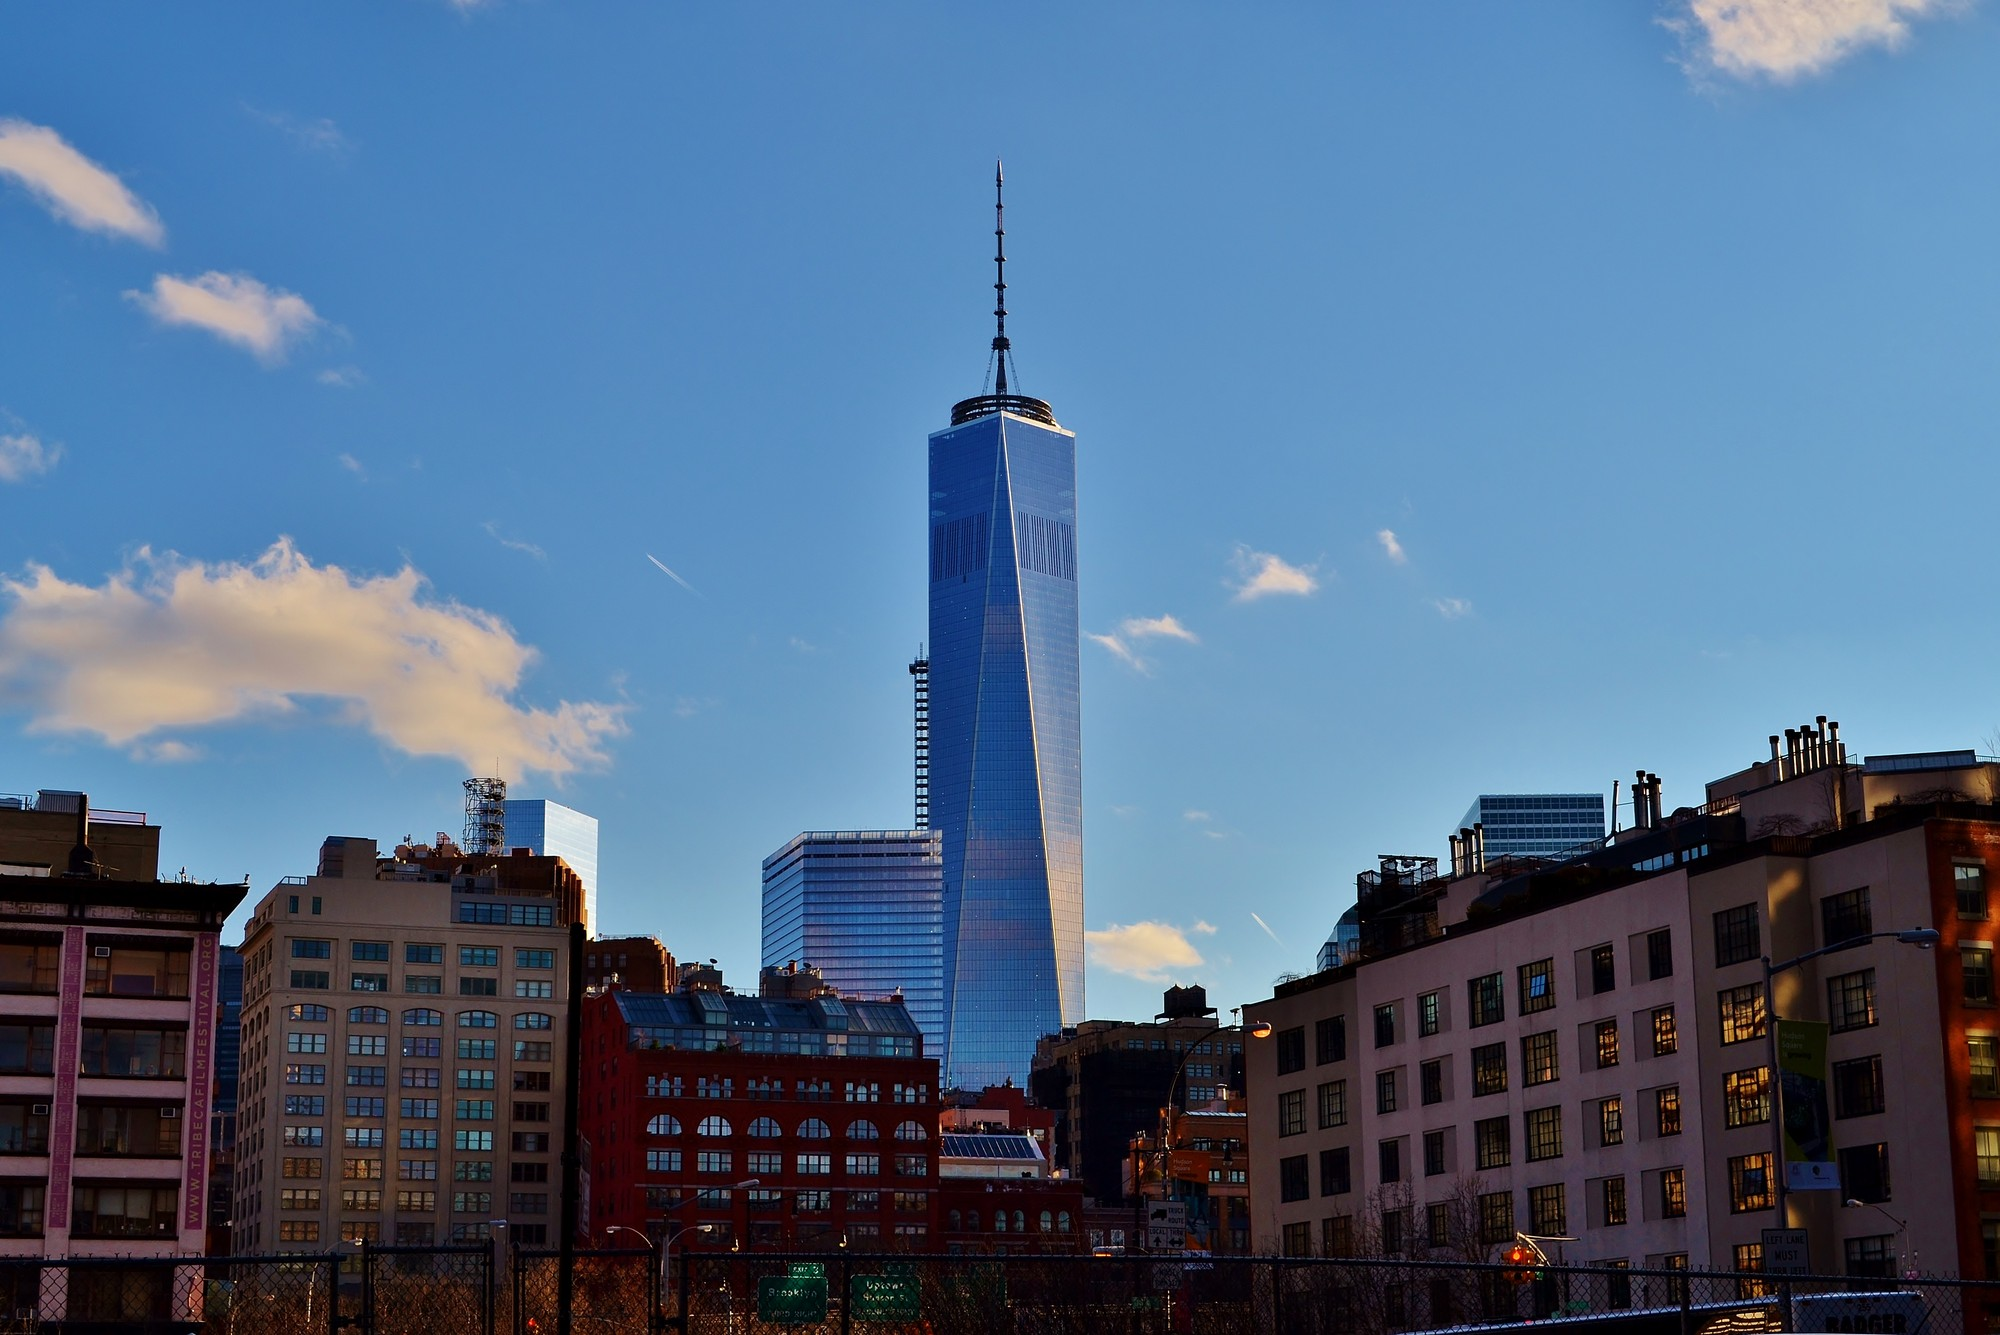 Did the New World Trade Center Live Up to its Expectations?, © flickr user 76807015@N03. Used under <a href='https://creativecommons.org/licenses/by-sa/2.0/'>Creative Commons</a>